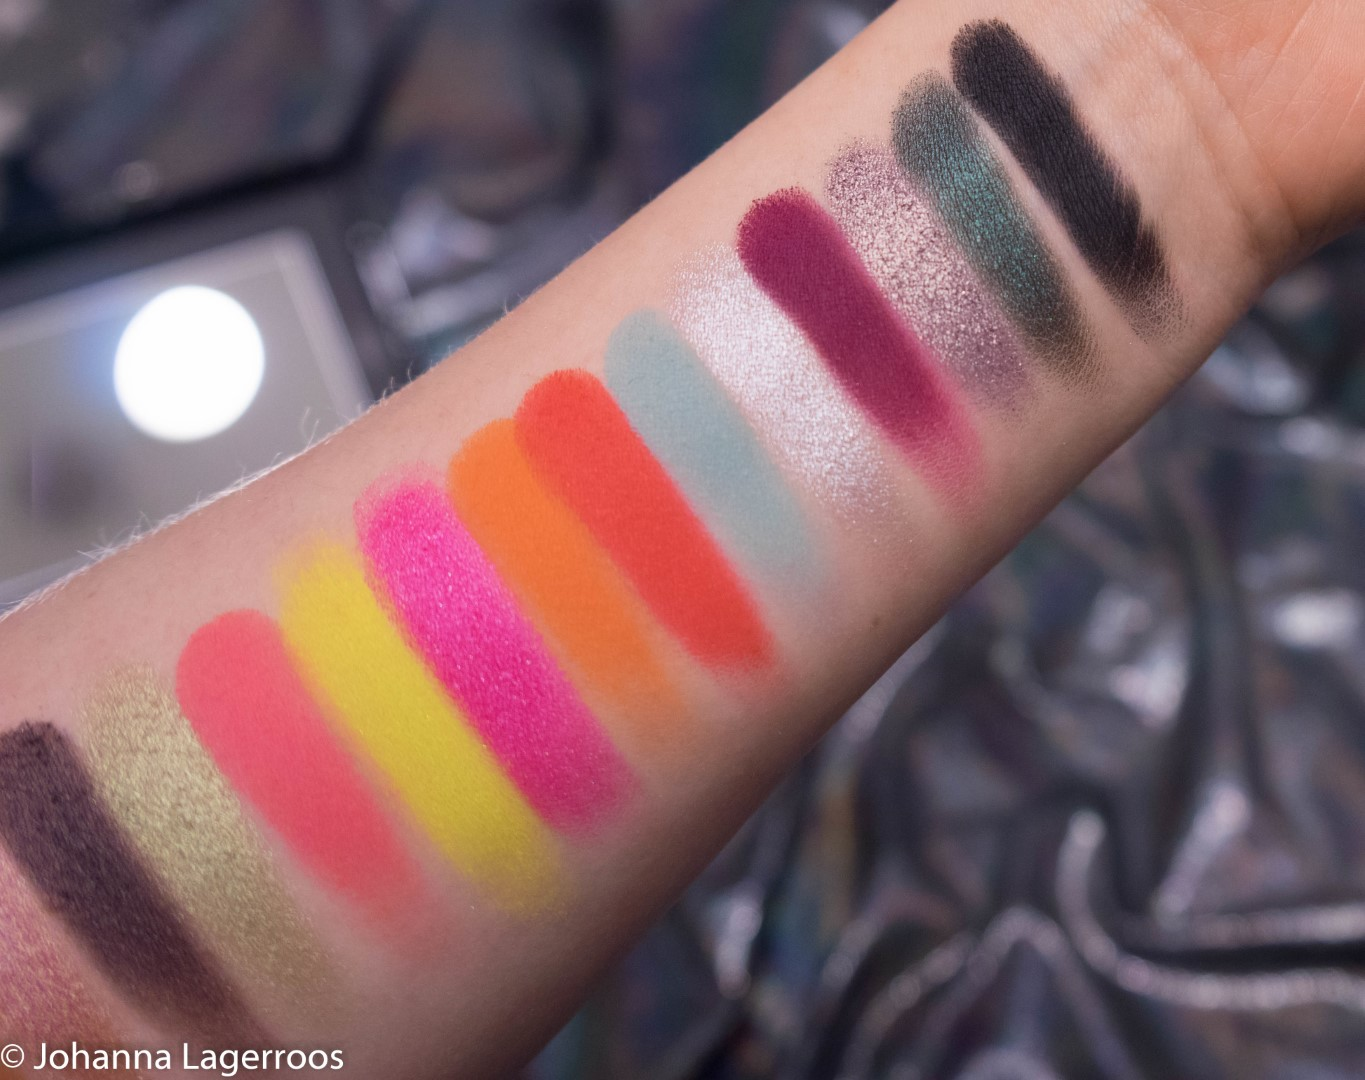 Conspiracy swatches